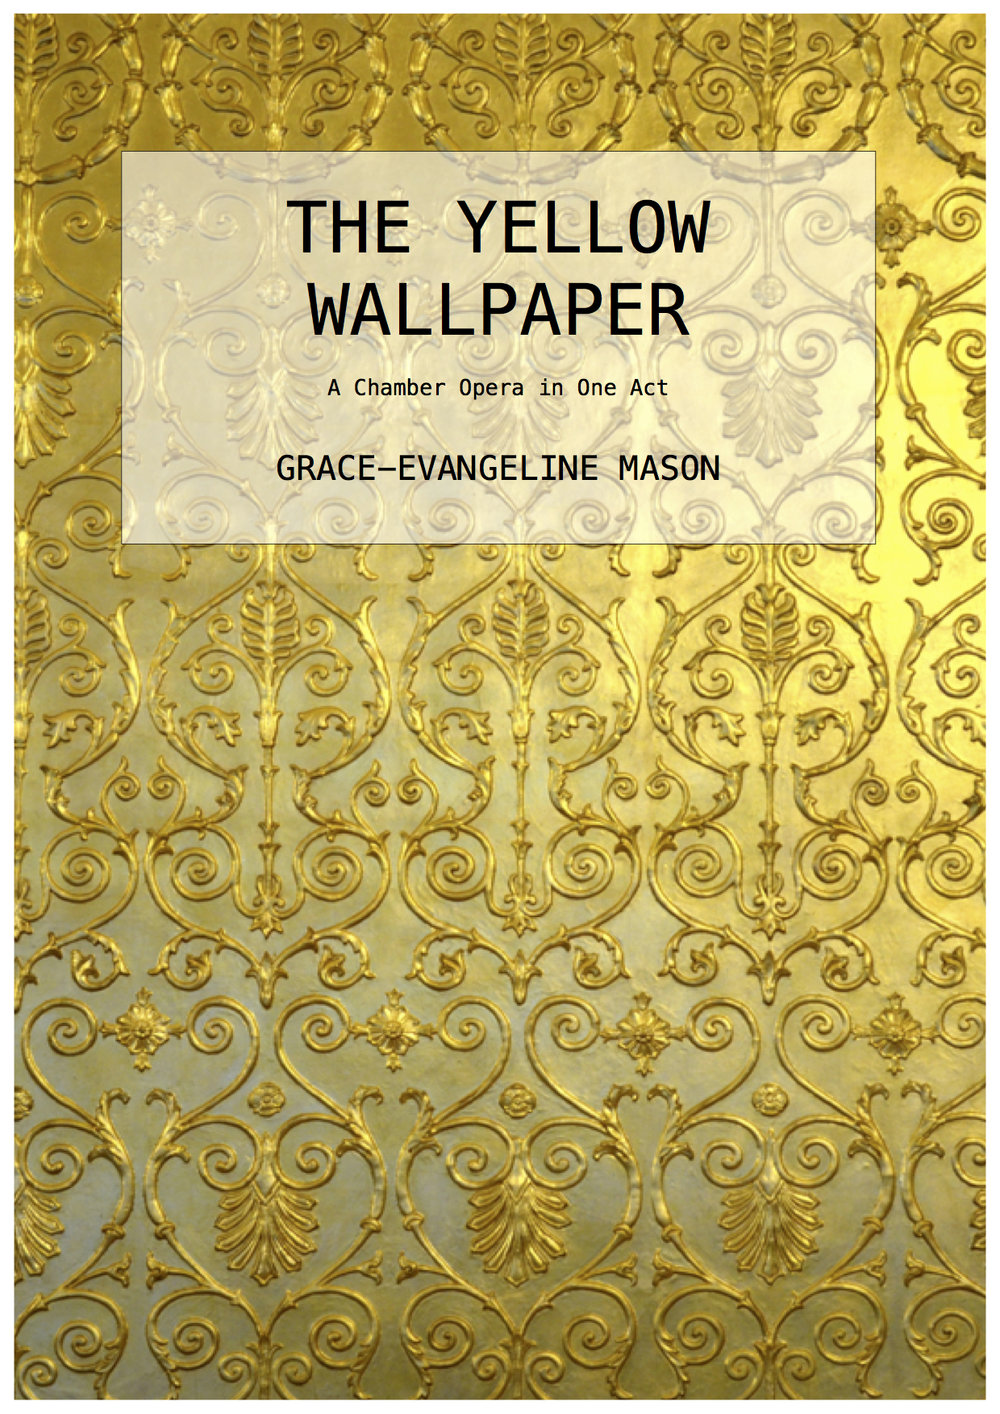 'The Yellow Wallpaper' (2016) - A Chamber Opera in One ActDuration: 20''The Woman' - soprano'John' - baritone'Jennie/The Woman In The Paper' - mezzo-sopranoflute/picc.clarinet/bass cl.violinviola'celloCommissioned by the Helios Collective for first performance at ENO Lilian Baylis House (25/11/16)©Cover Image: 'The Yellow Wallpaper' by Grace-Evangeline Mason 2016